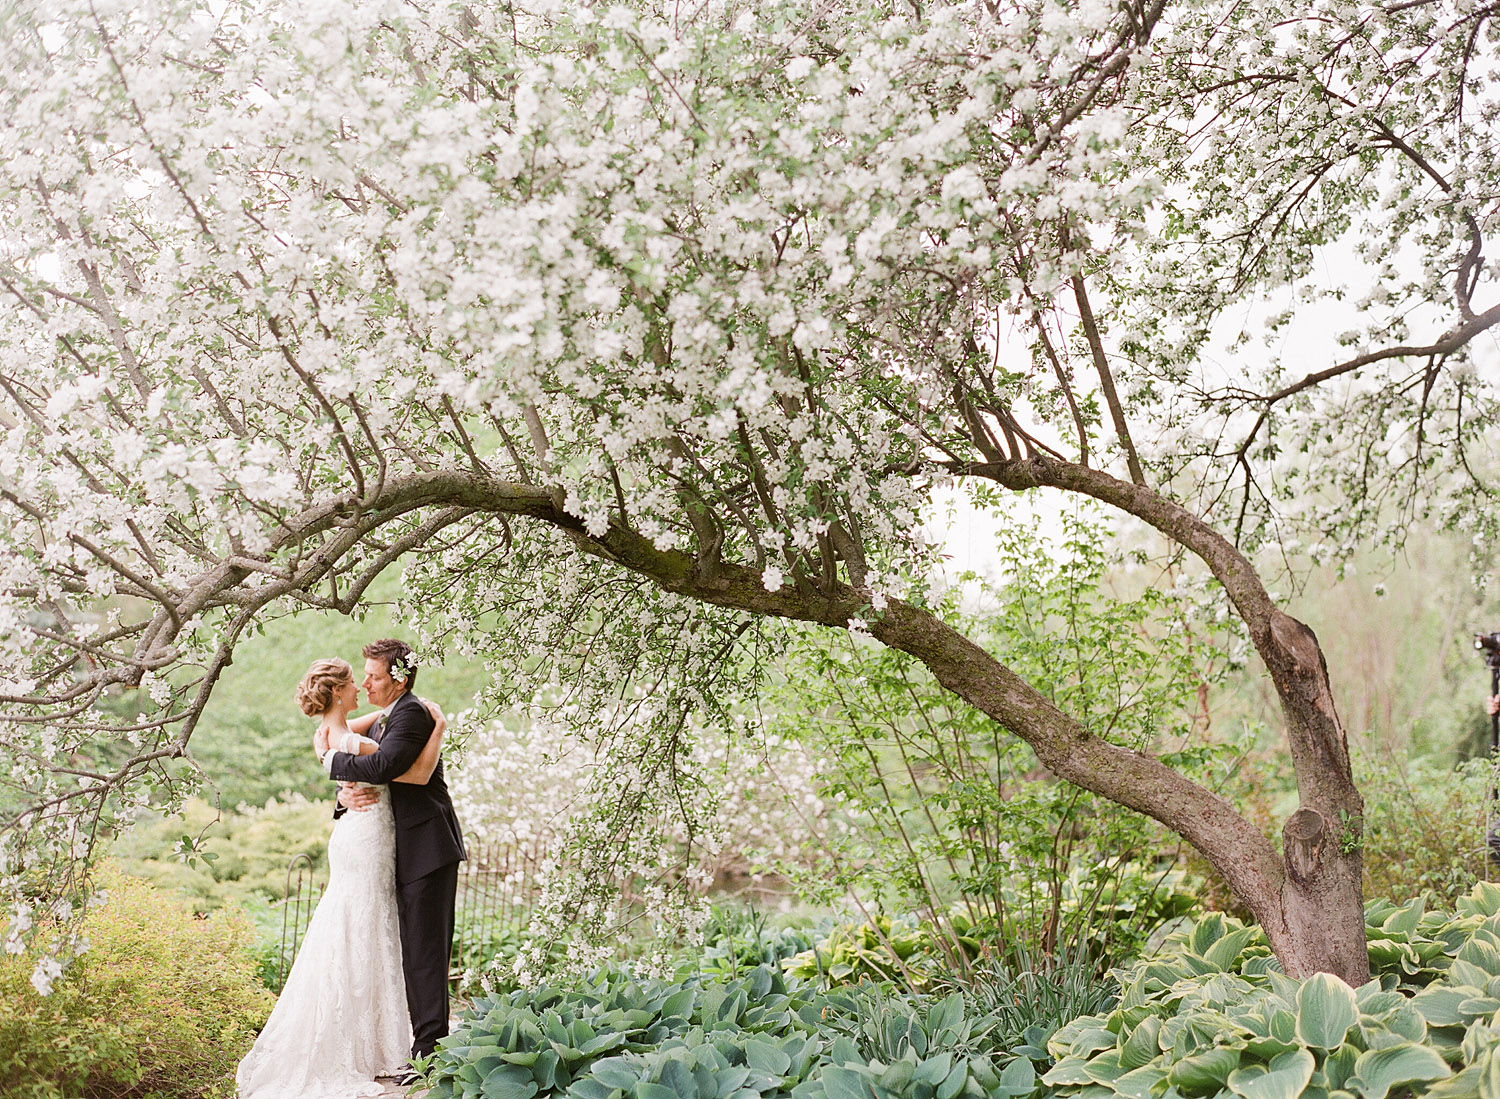 bride and groom have their first look under the blooming trees at their wedding at Northwind Perennial Garden in wisconsin while Destination wedding photographer shoots their wedding on film.